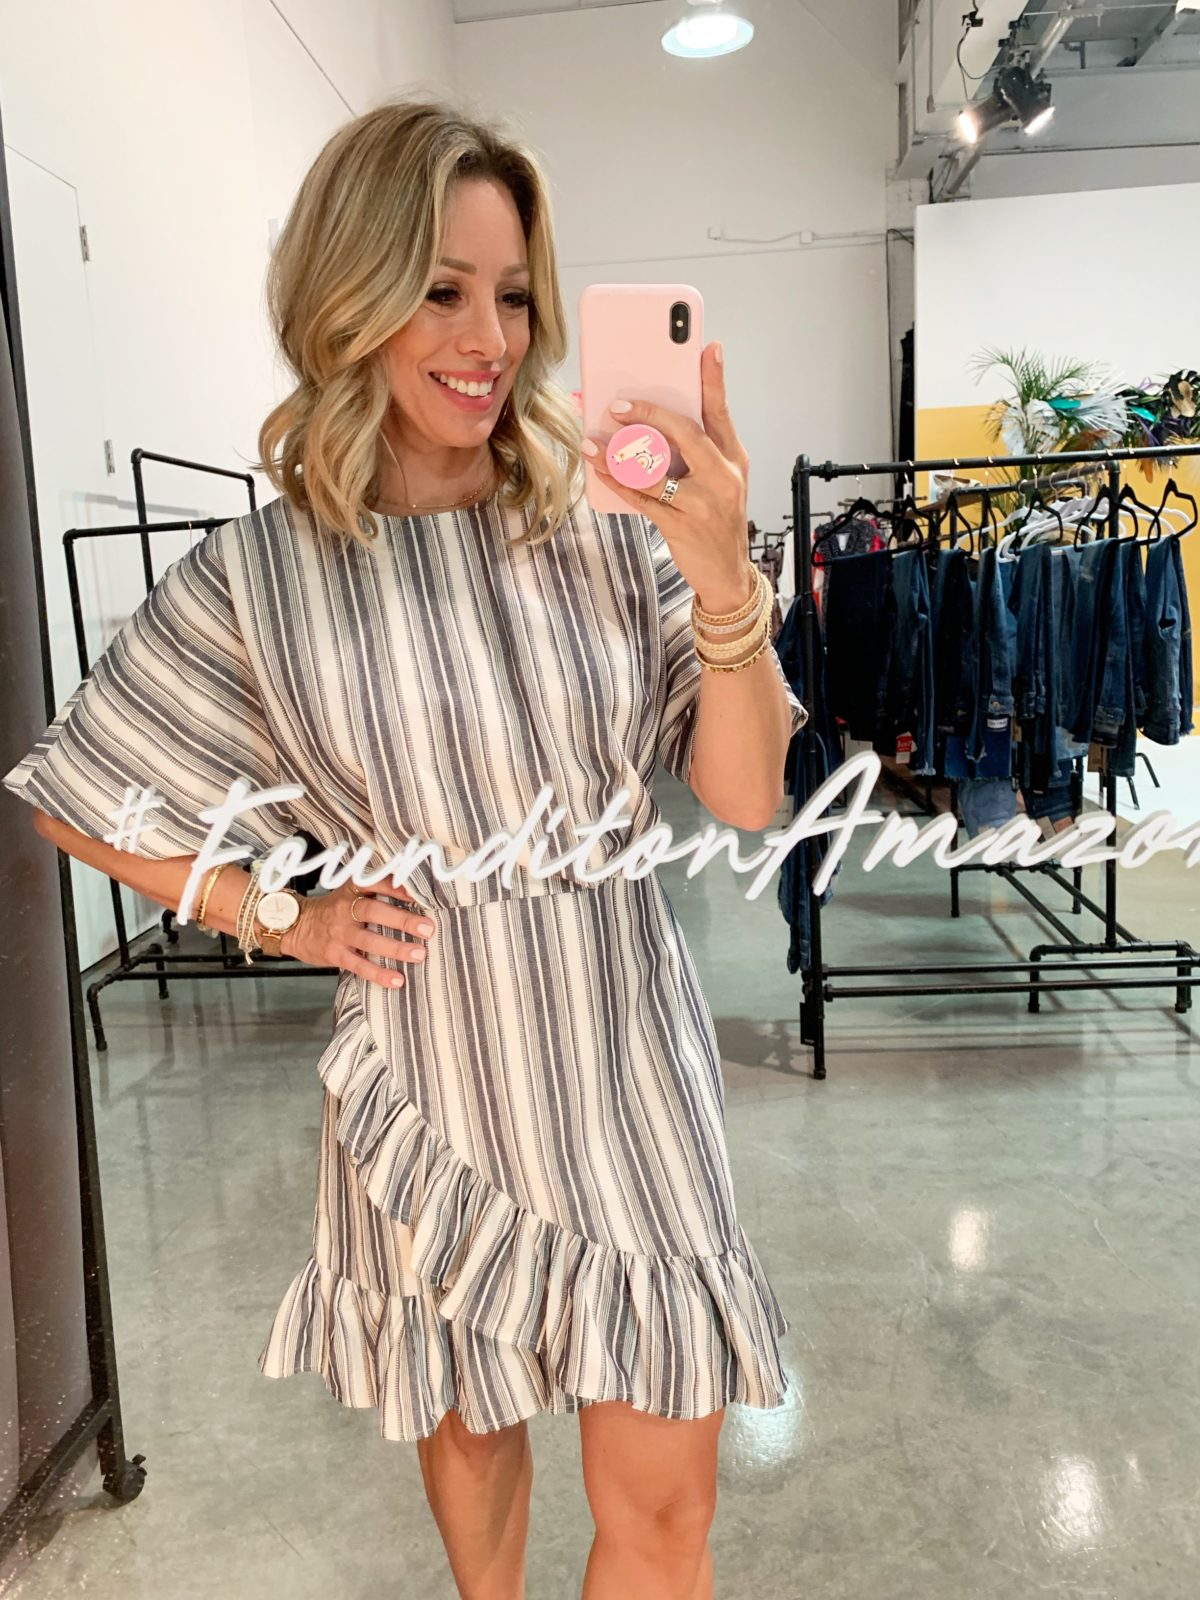 Amazon Prime Day Striped Dress